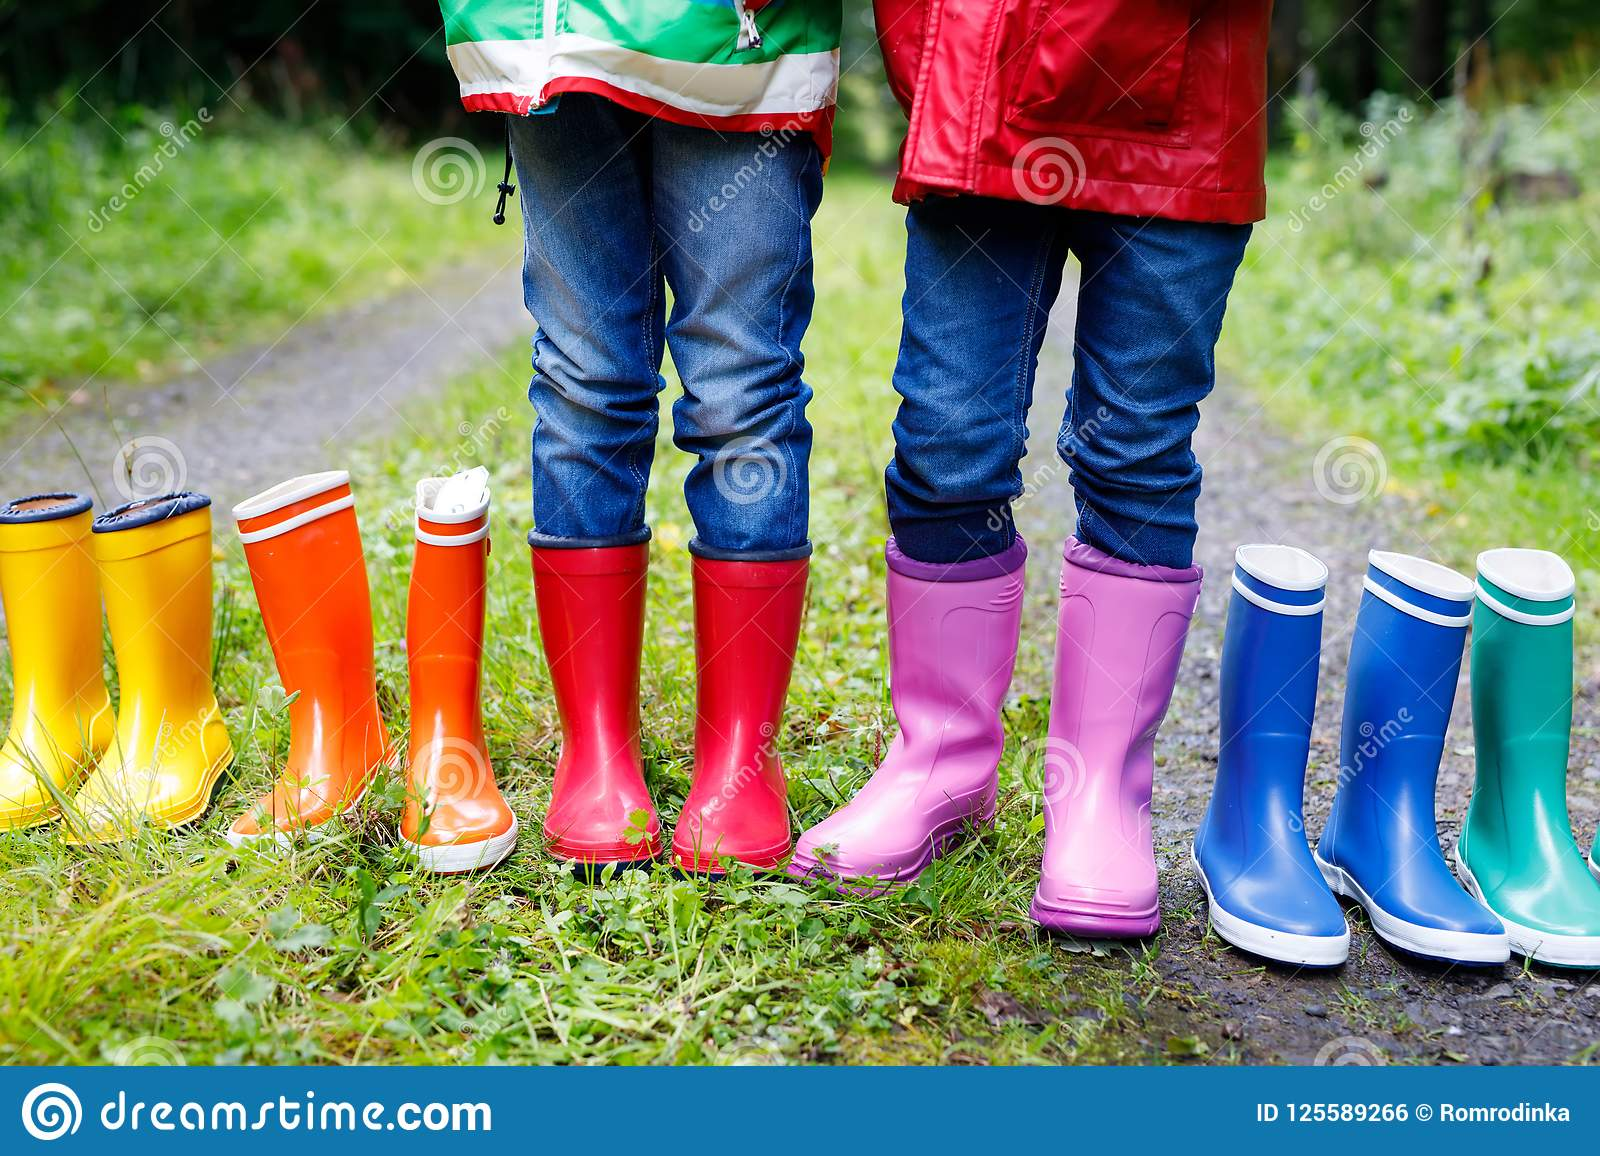 cheap prices the sale of shoes classic fit Little Kids, Boys And Girls In Colorful Rain Boots. Children ...